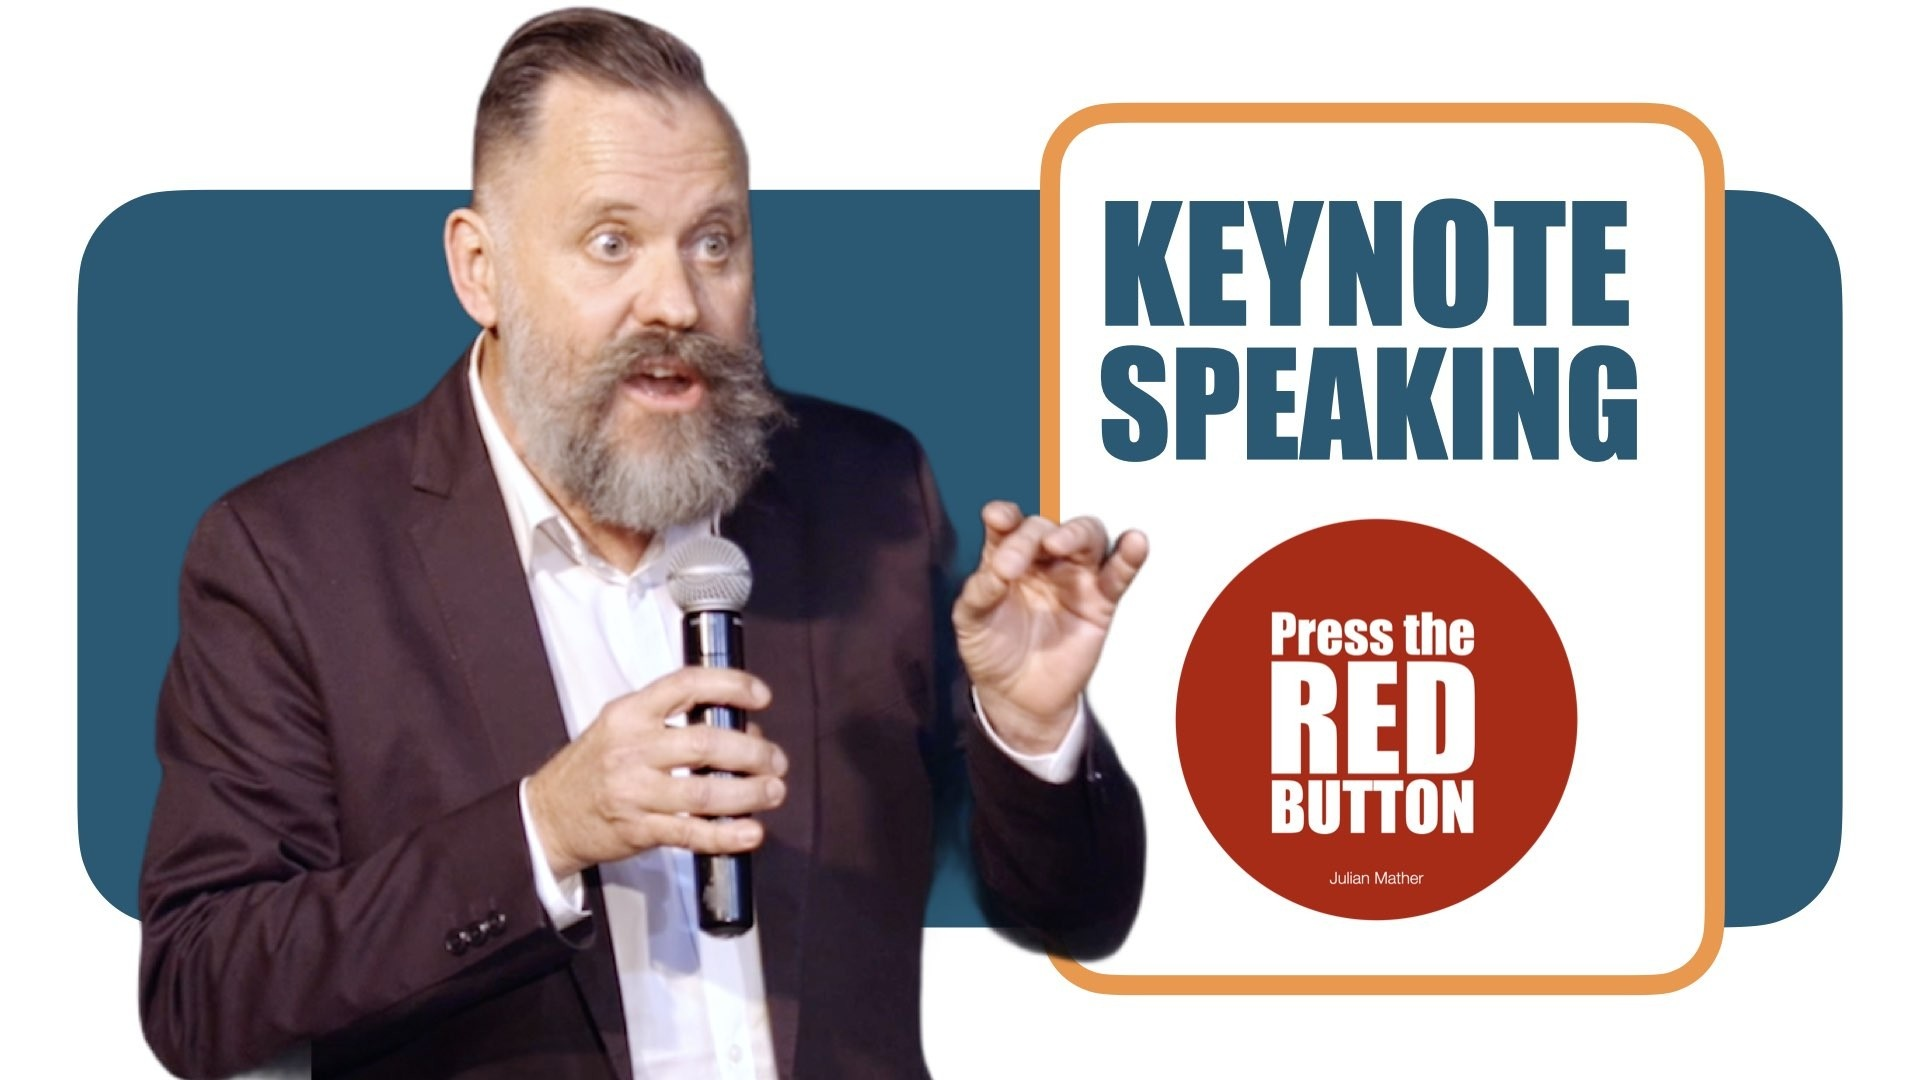 Julian Mather is a Live and Virtual Keynote Speaker & Conference Speaker on Digital Shift to Video